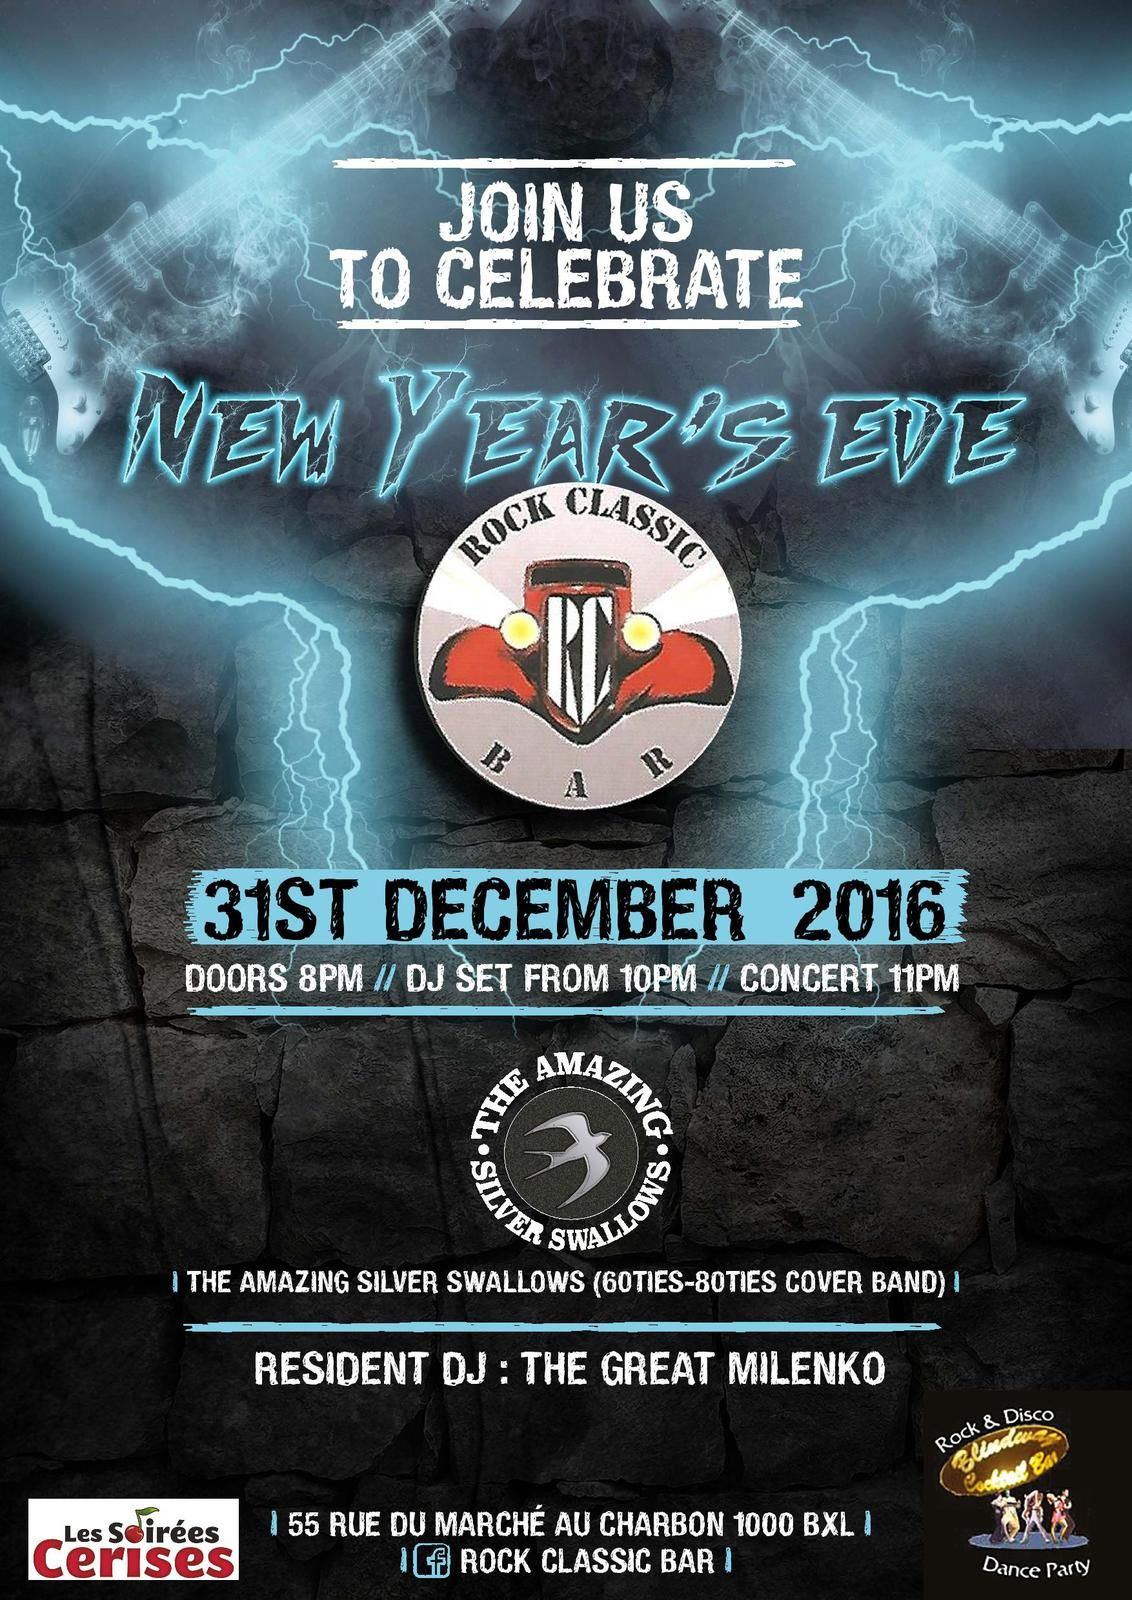 ▶ The Amazing silver swallows @ Rock Classic (New Year's eve) - 31/12/2016